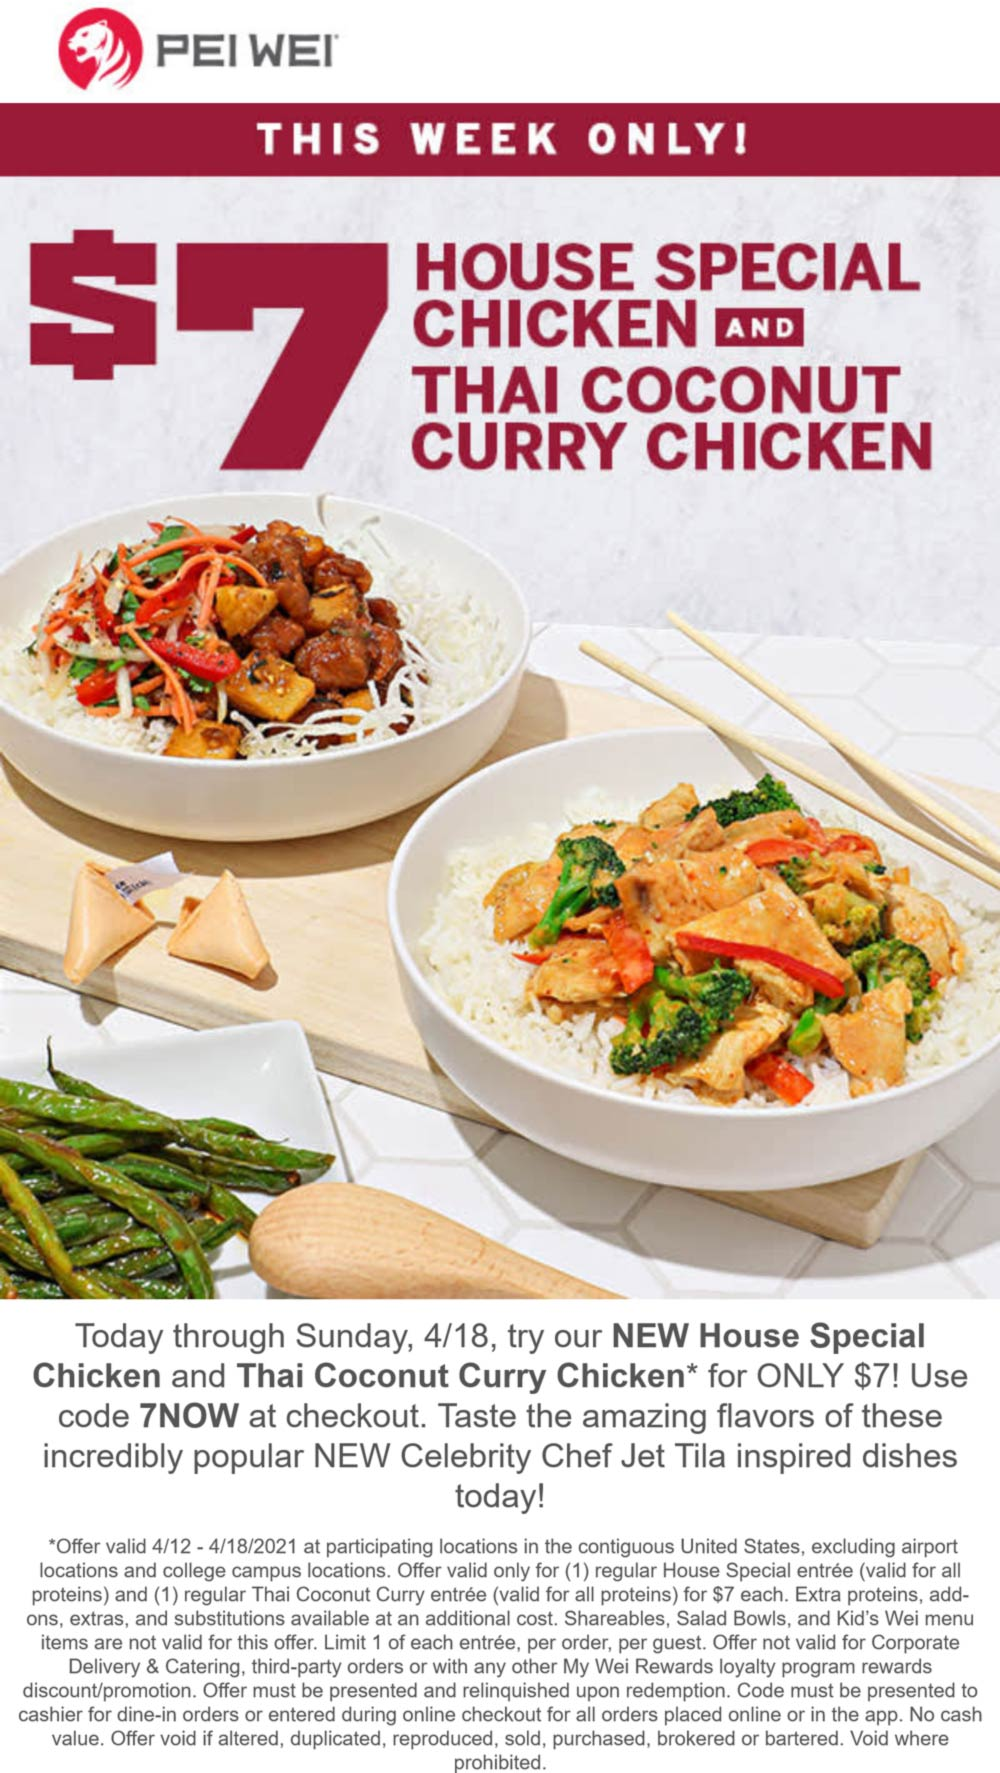 Pei Wei restaurants Coupon  Special chicken entree + coconut curry chicken entree = $7 at Pei Wei via promo code 7NOW #peiwei